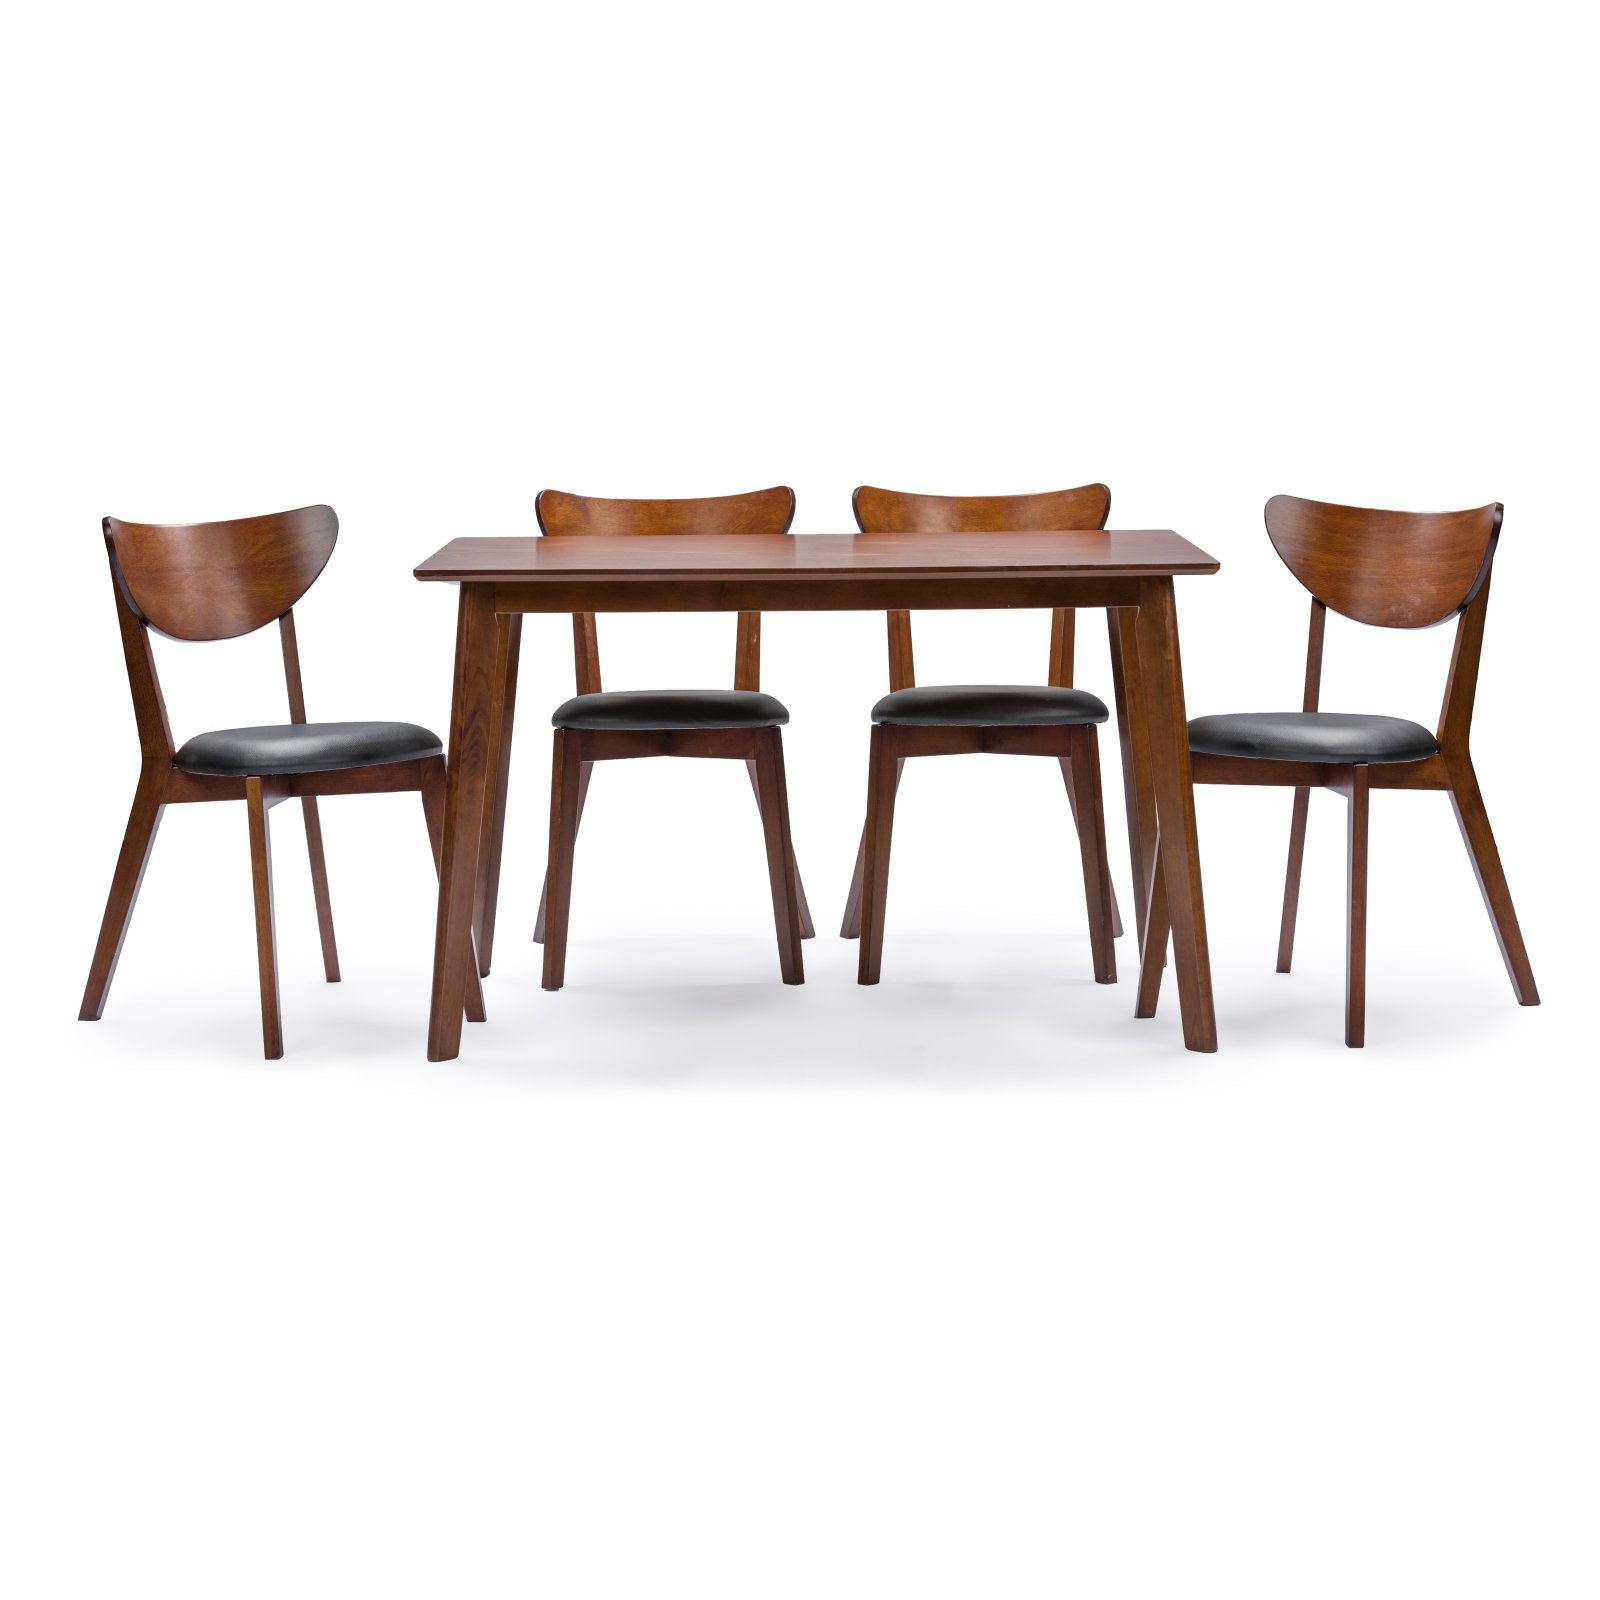 Baxton Studio Sumner Mid Century Style Walnut Brown 5 Piece Dining Set